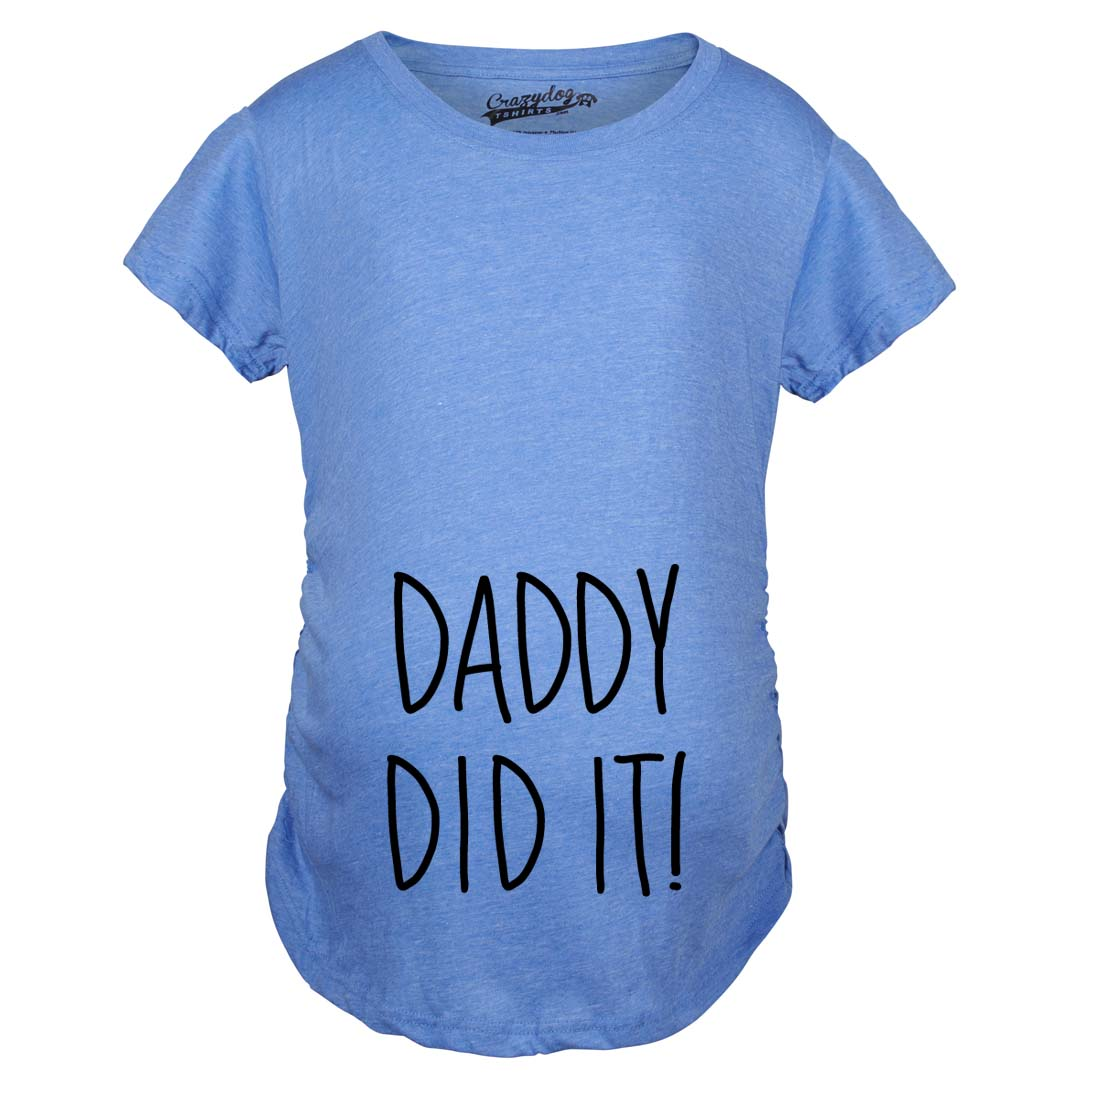 Let your bump do the talking with these funny maternity T-shirts.T-Shirts and more clothing with great funny maternity tee designs. Huge selection in many colors and 0549sahibi.tk your sense of style with funny Maternity Clothes.